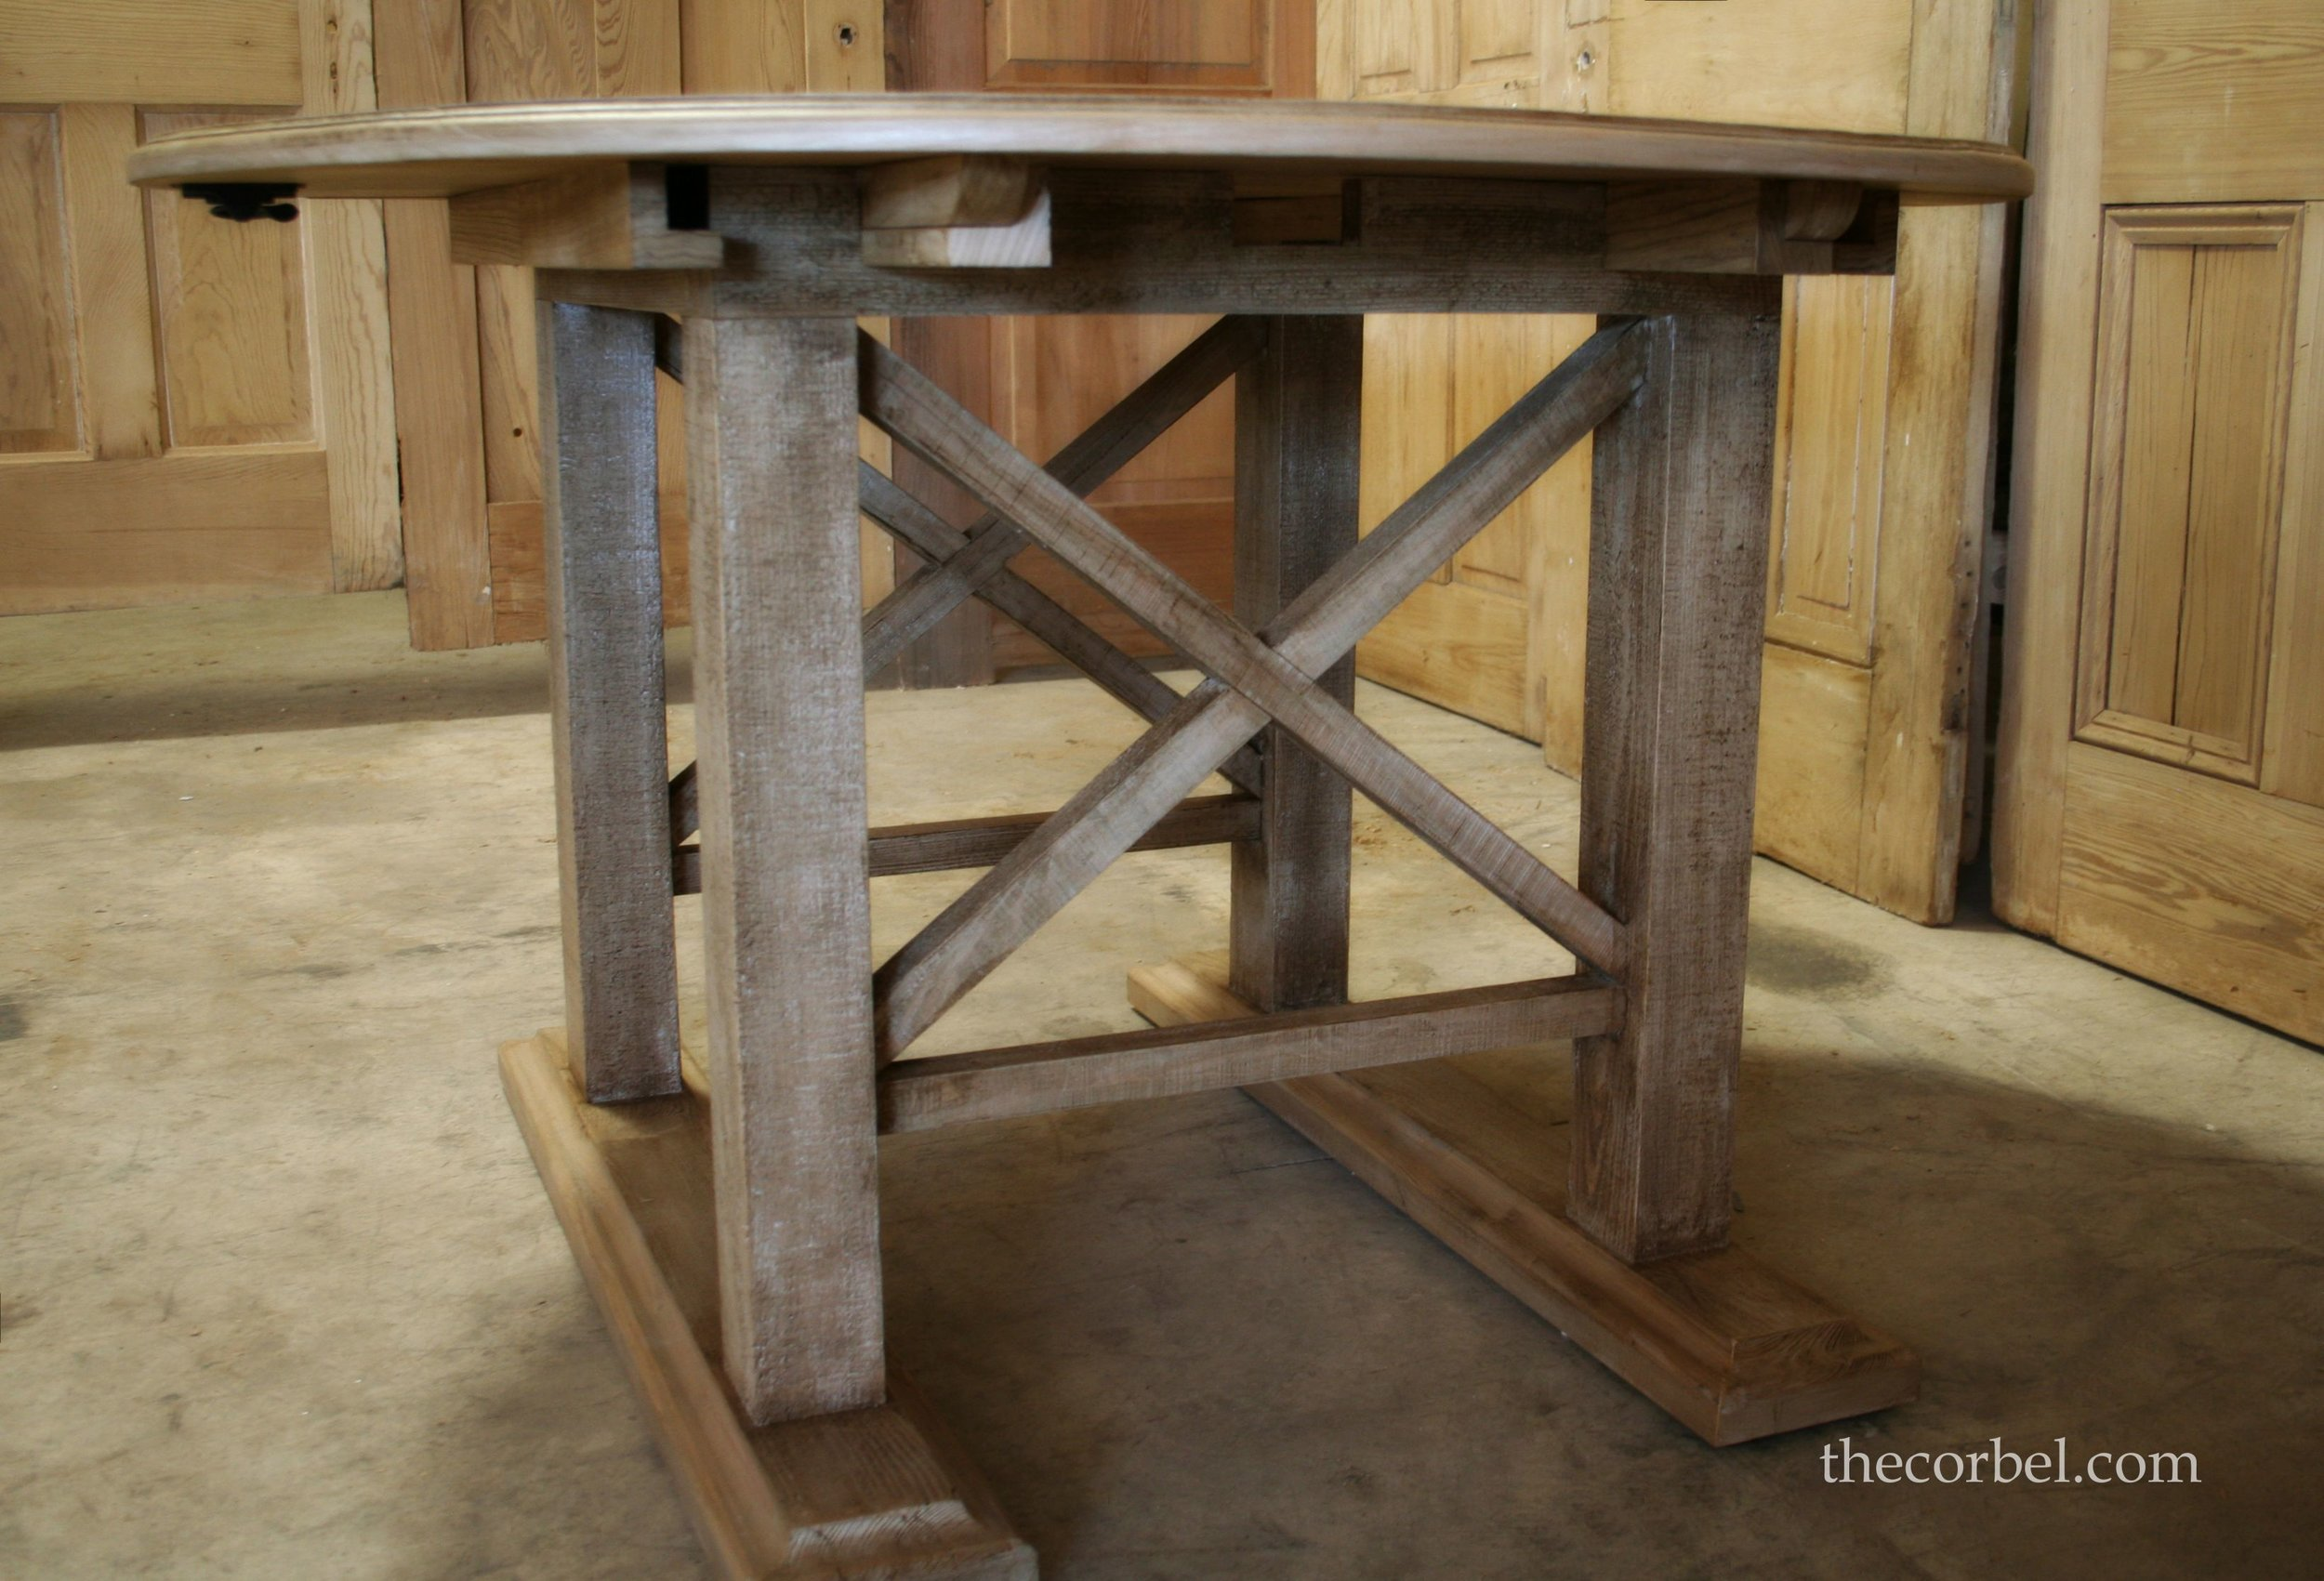 Round leaf table with x design natural finish WM.jpg